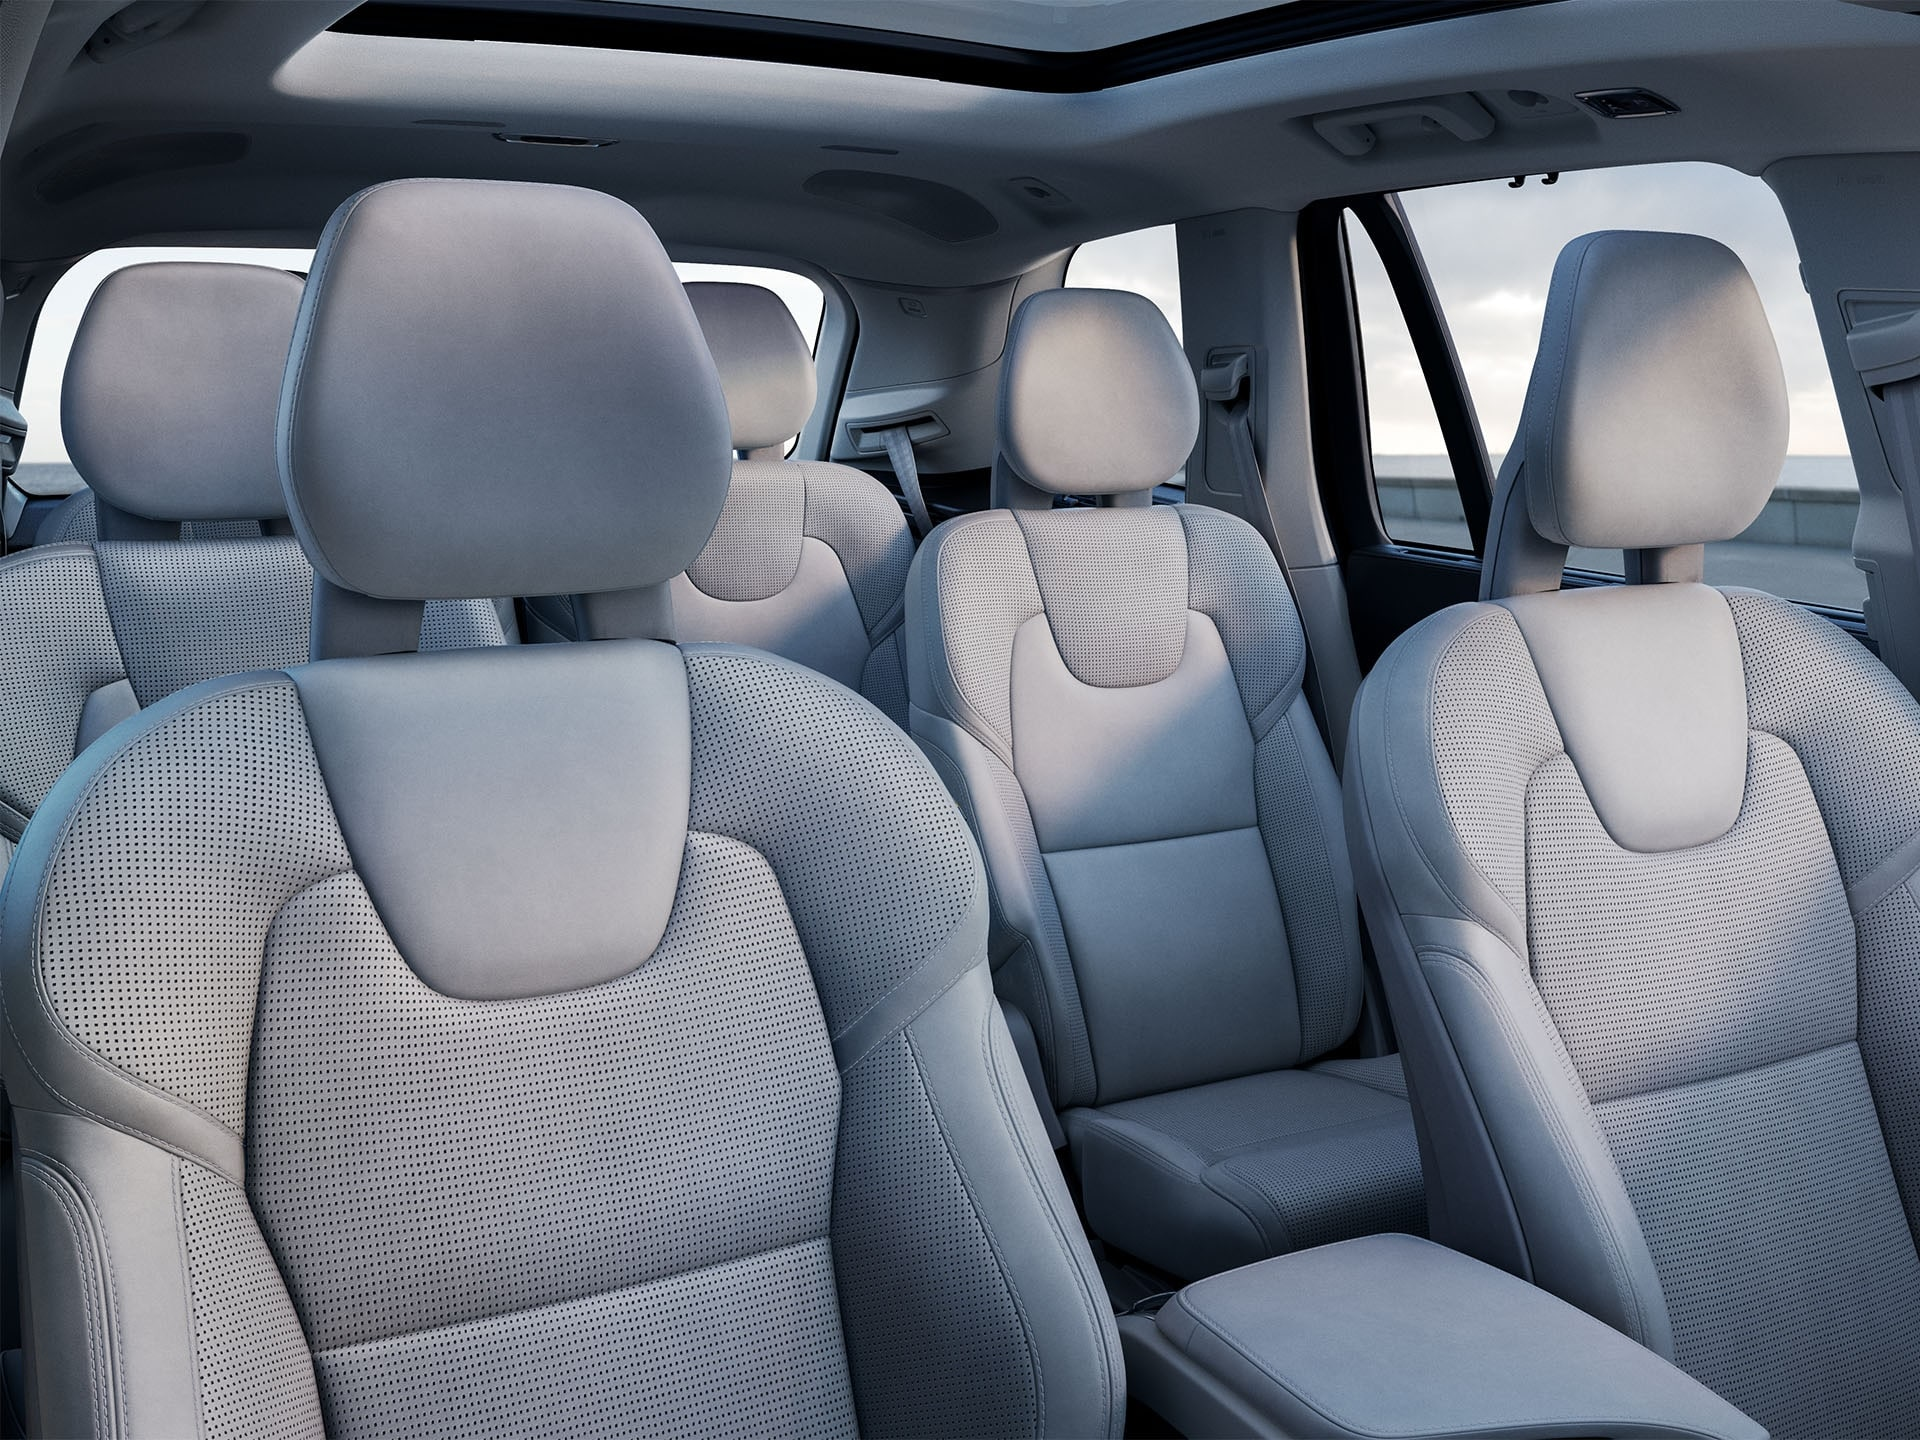 Inside a Volvo SUV with 3 rows, blonde interior on seats